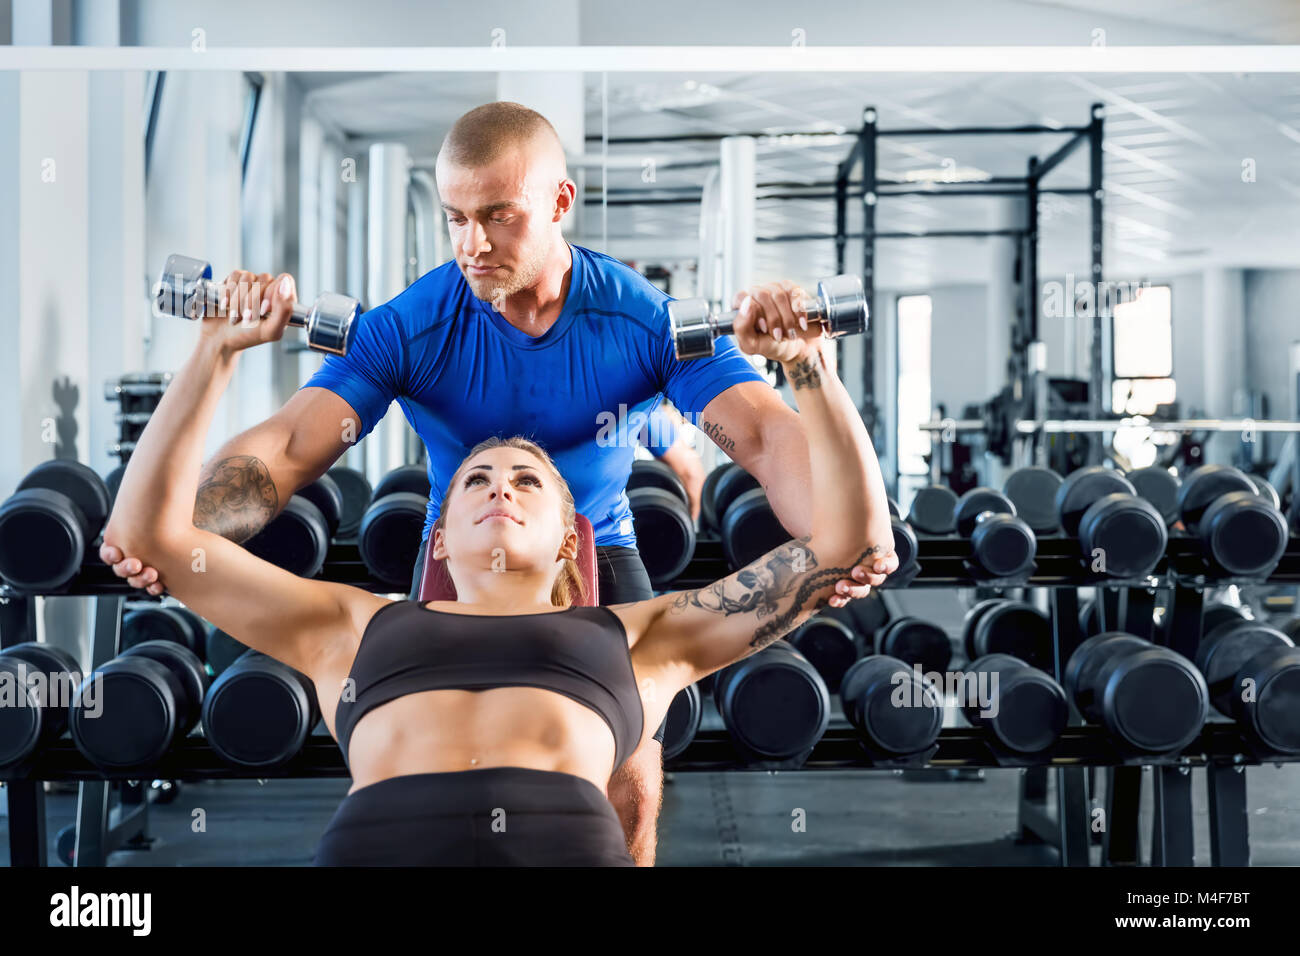 Personal trainer assisting while exercises at the gym. - Stock Image